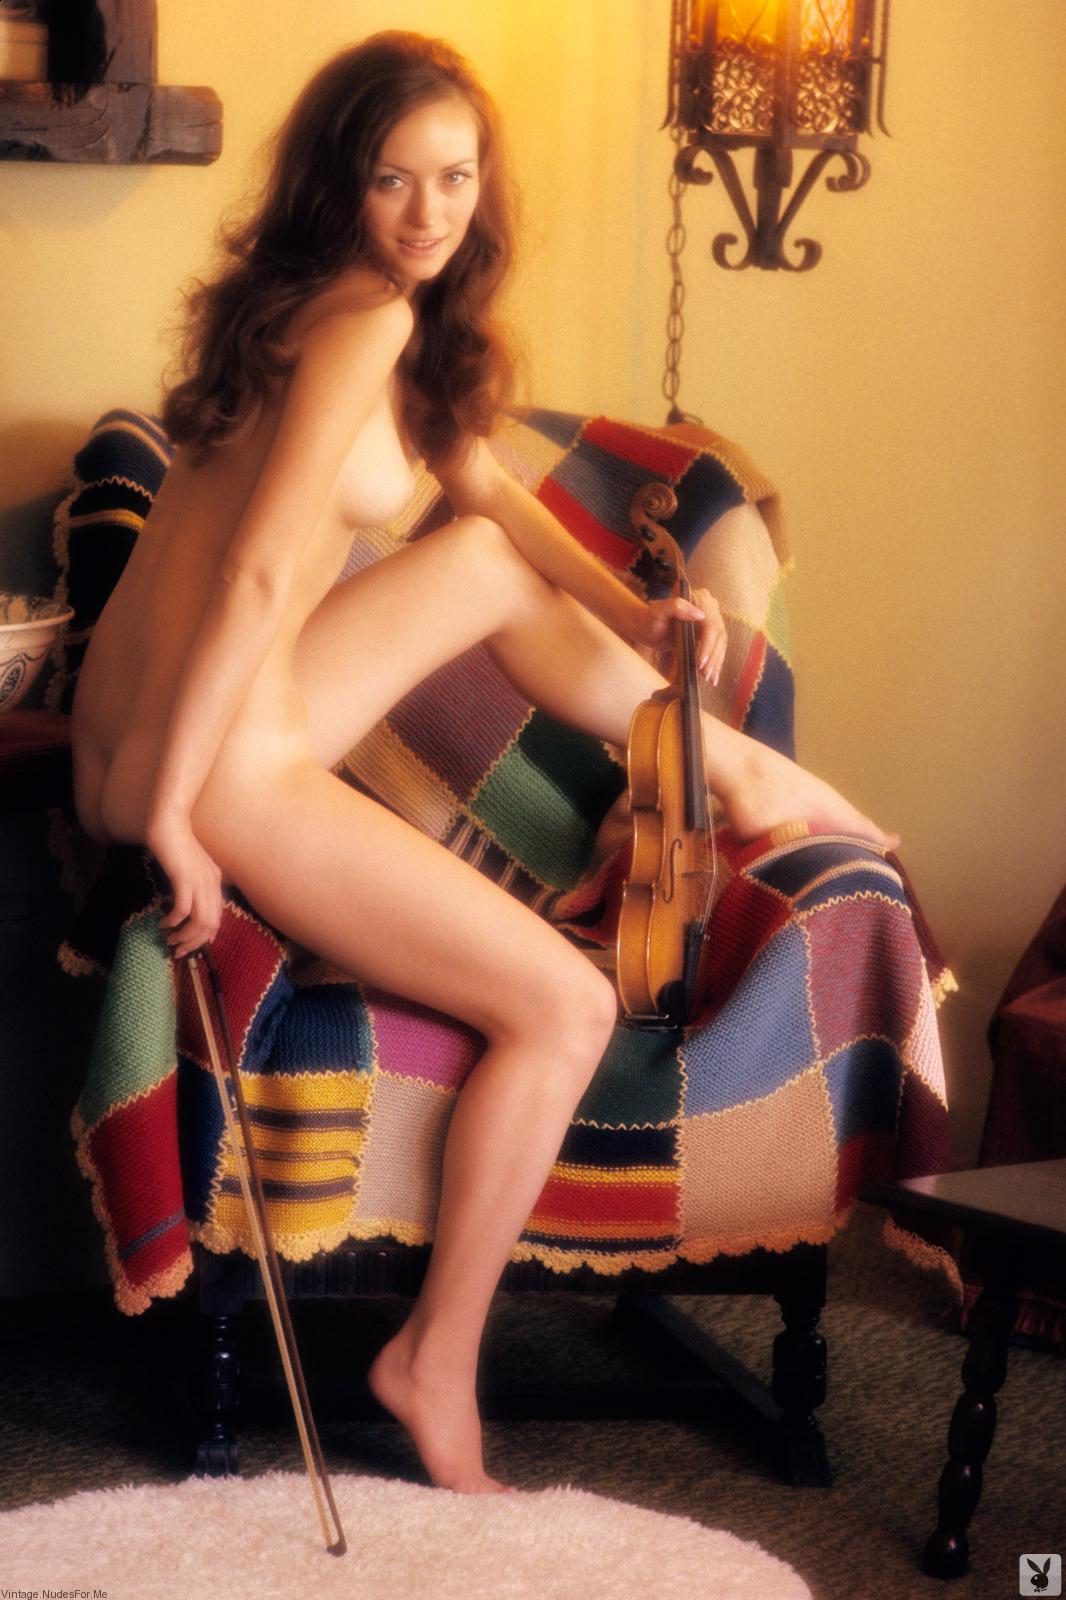 Share playboy nudes girls bonnie large were visited